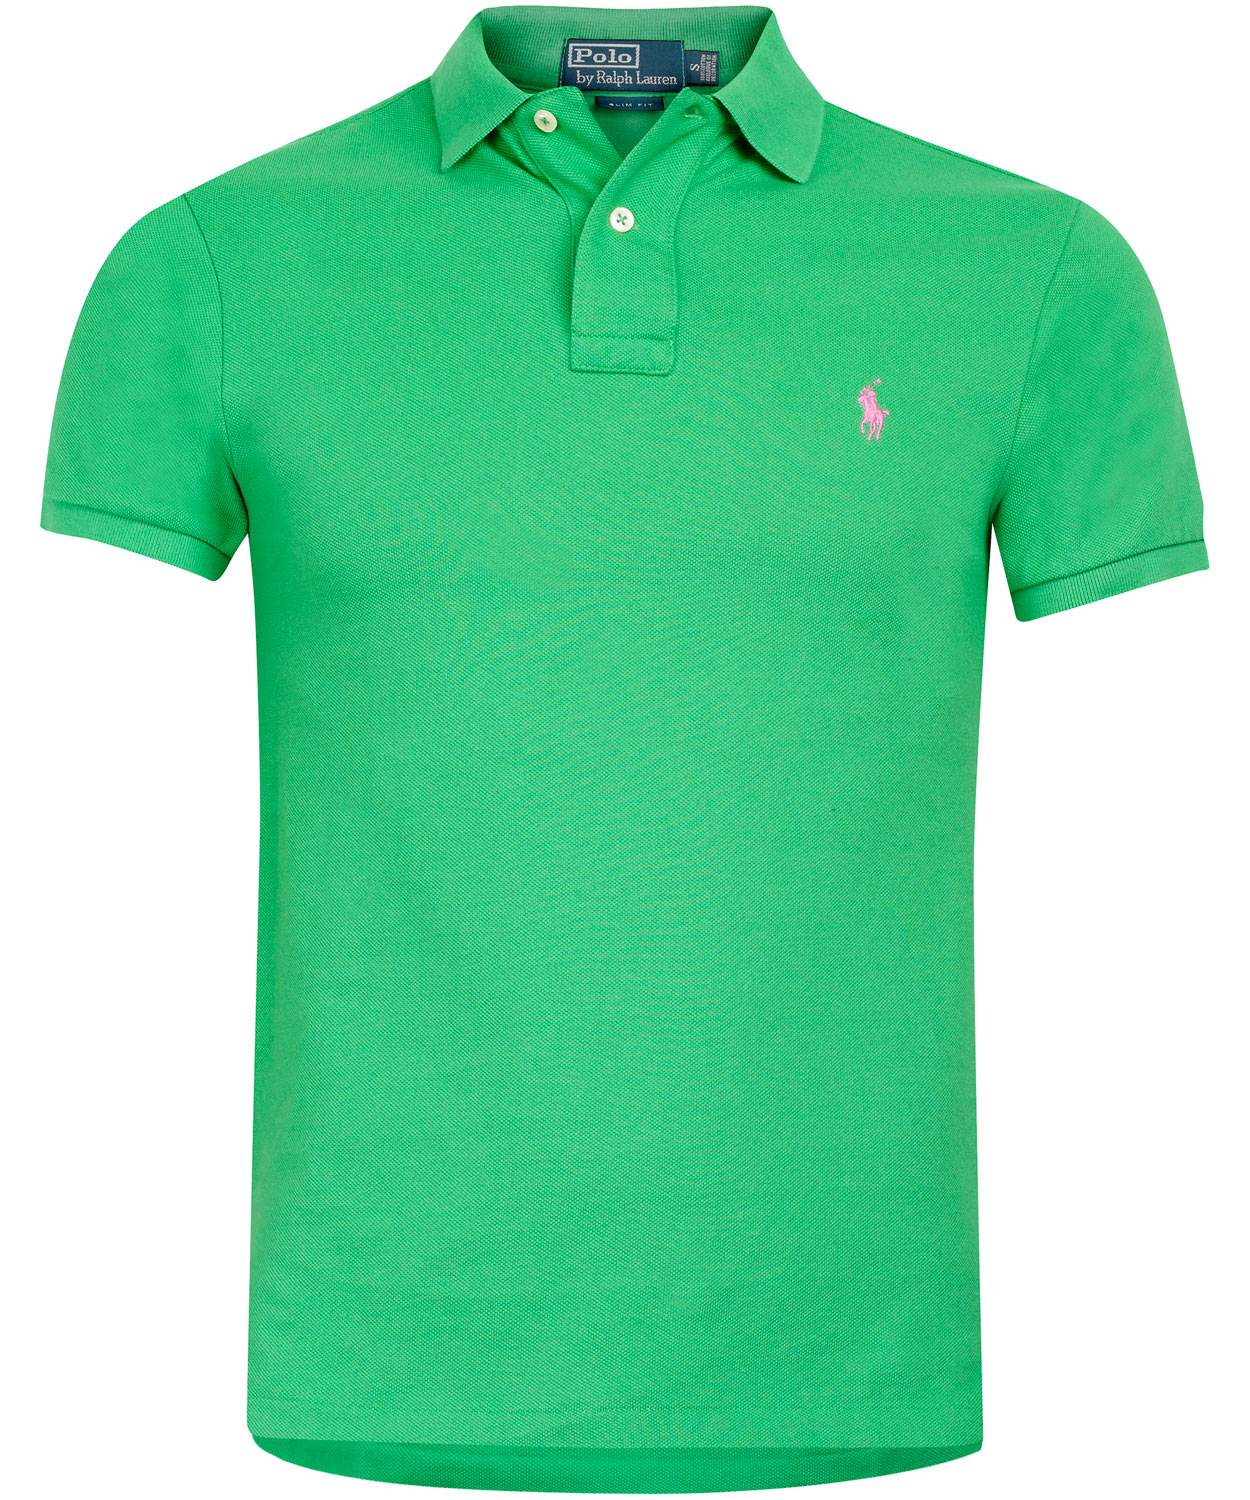 Polo ralph lauren green polo shirt in green for men lyst for Man in polo shirt